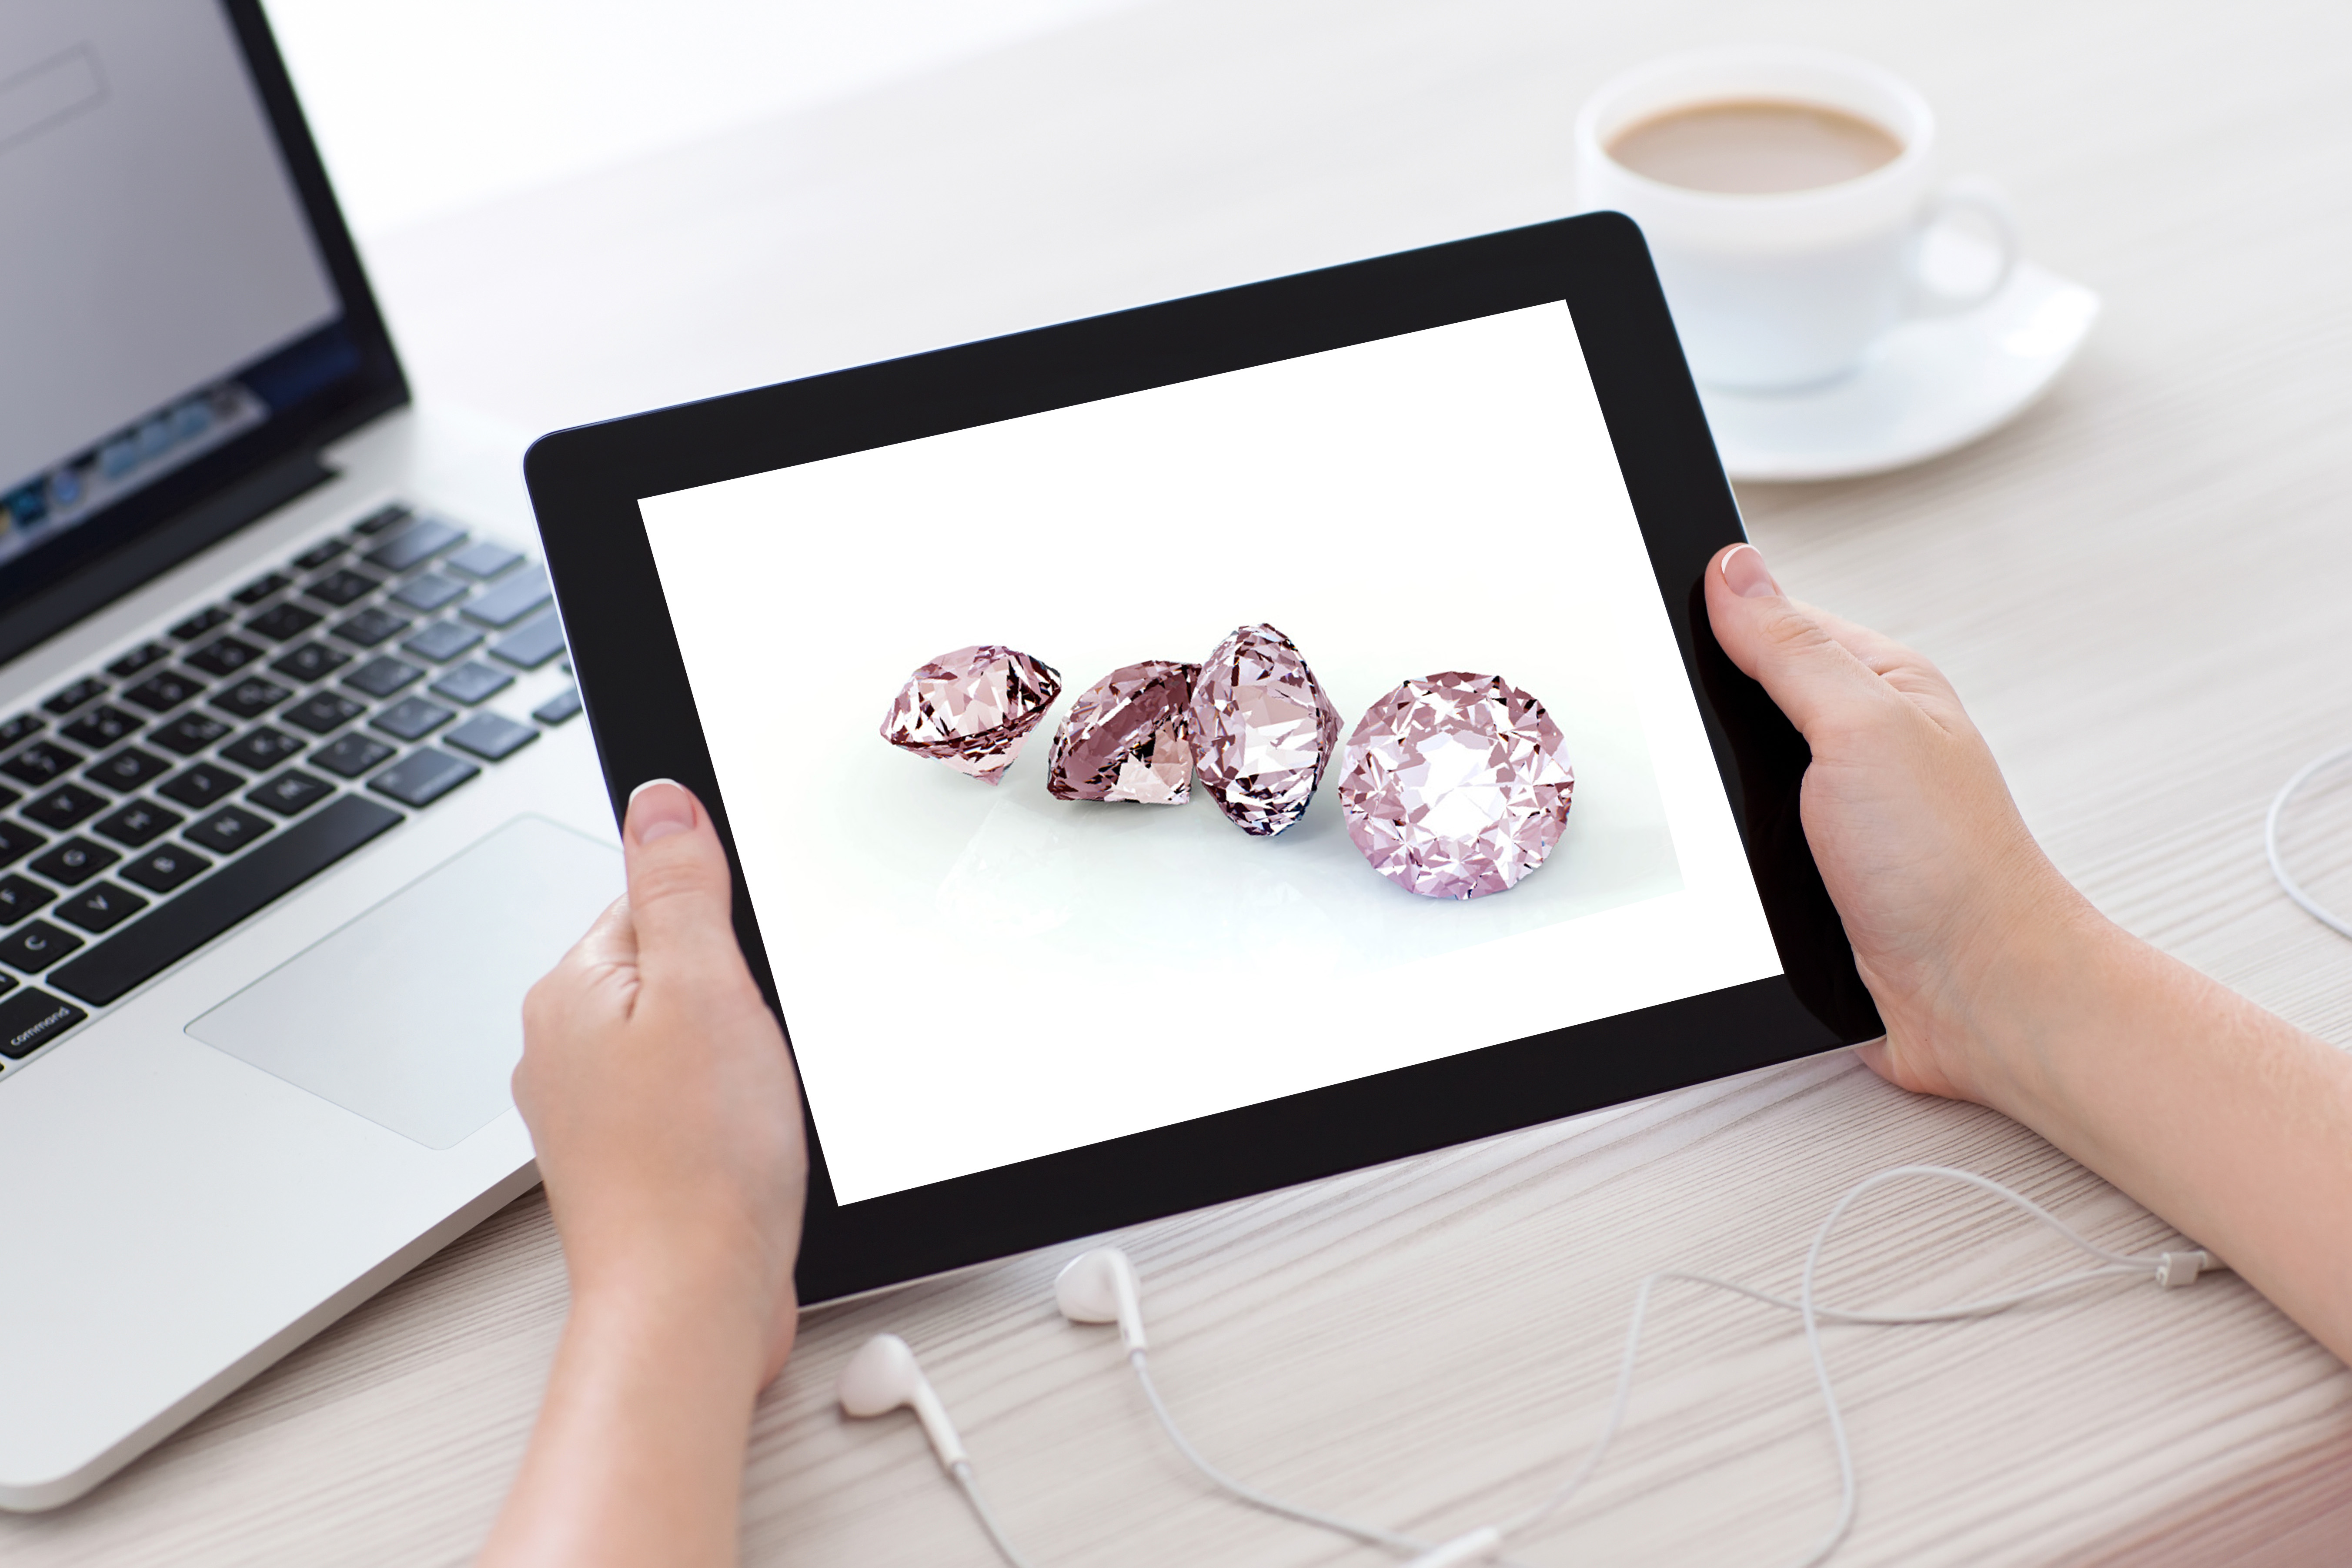 Innovative_Concept_for_Selling_Pink_Diamonds_1-2.jpg